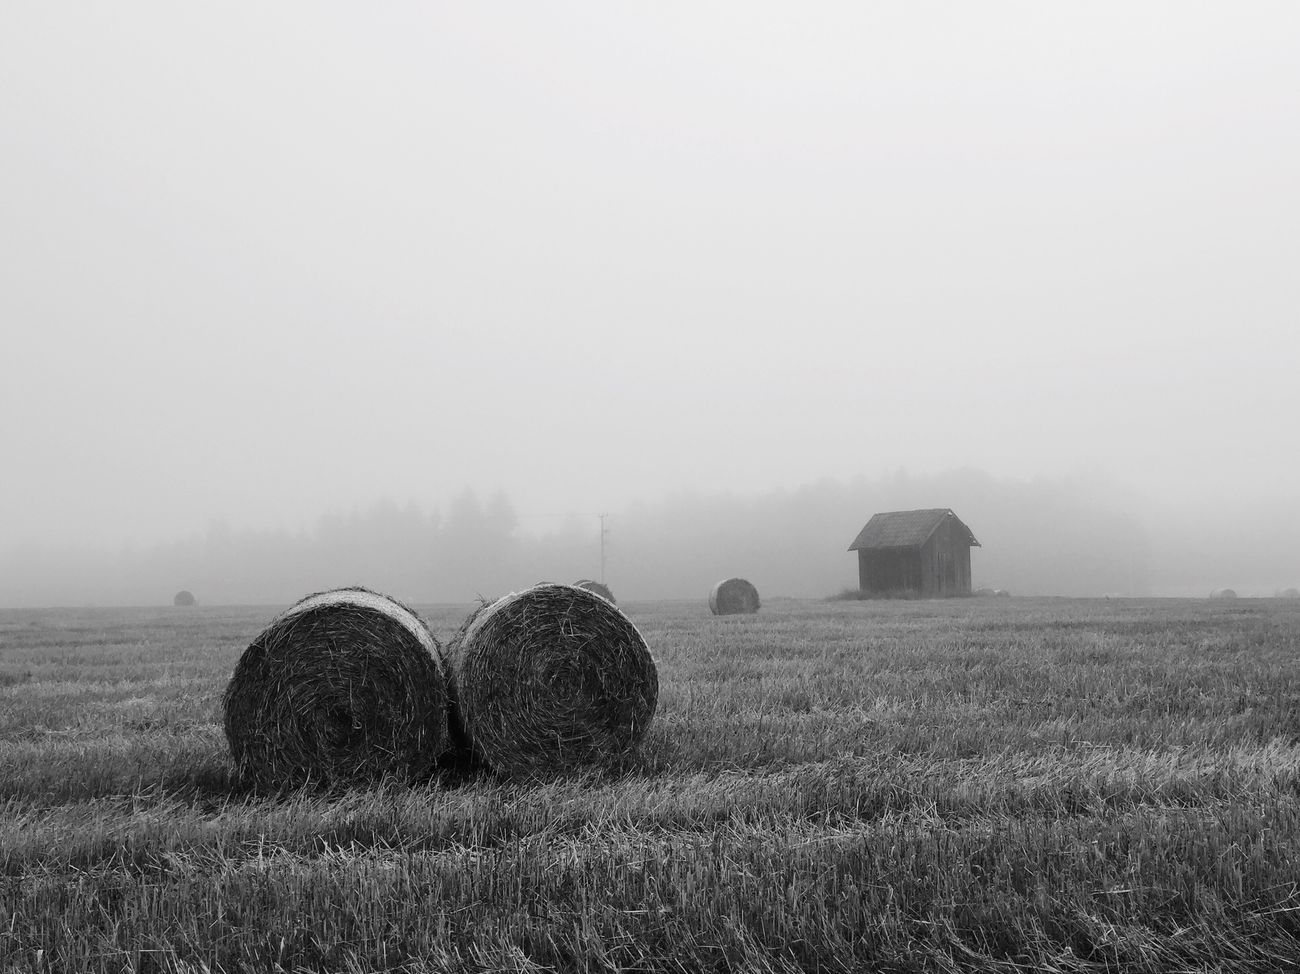 For the love of September Rural Scene Bale  Hay Agriculture Field Tranquil Scene Farm Harvesting Tranquility Weather Fog Landscape Nature Sky Scenics Beauty In Nature Foggy Grassy Outdoors Solitude